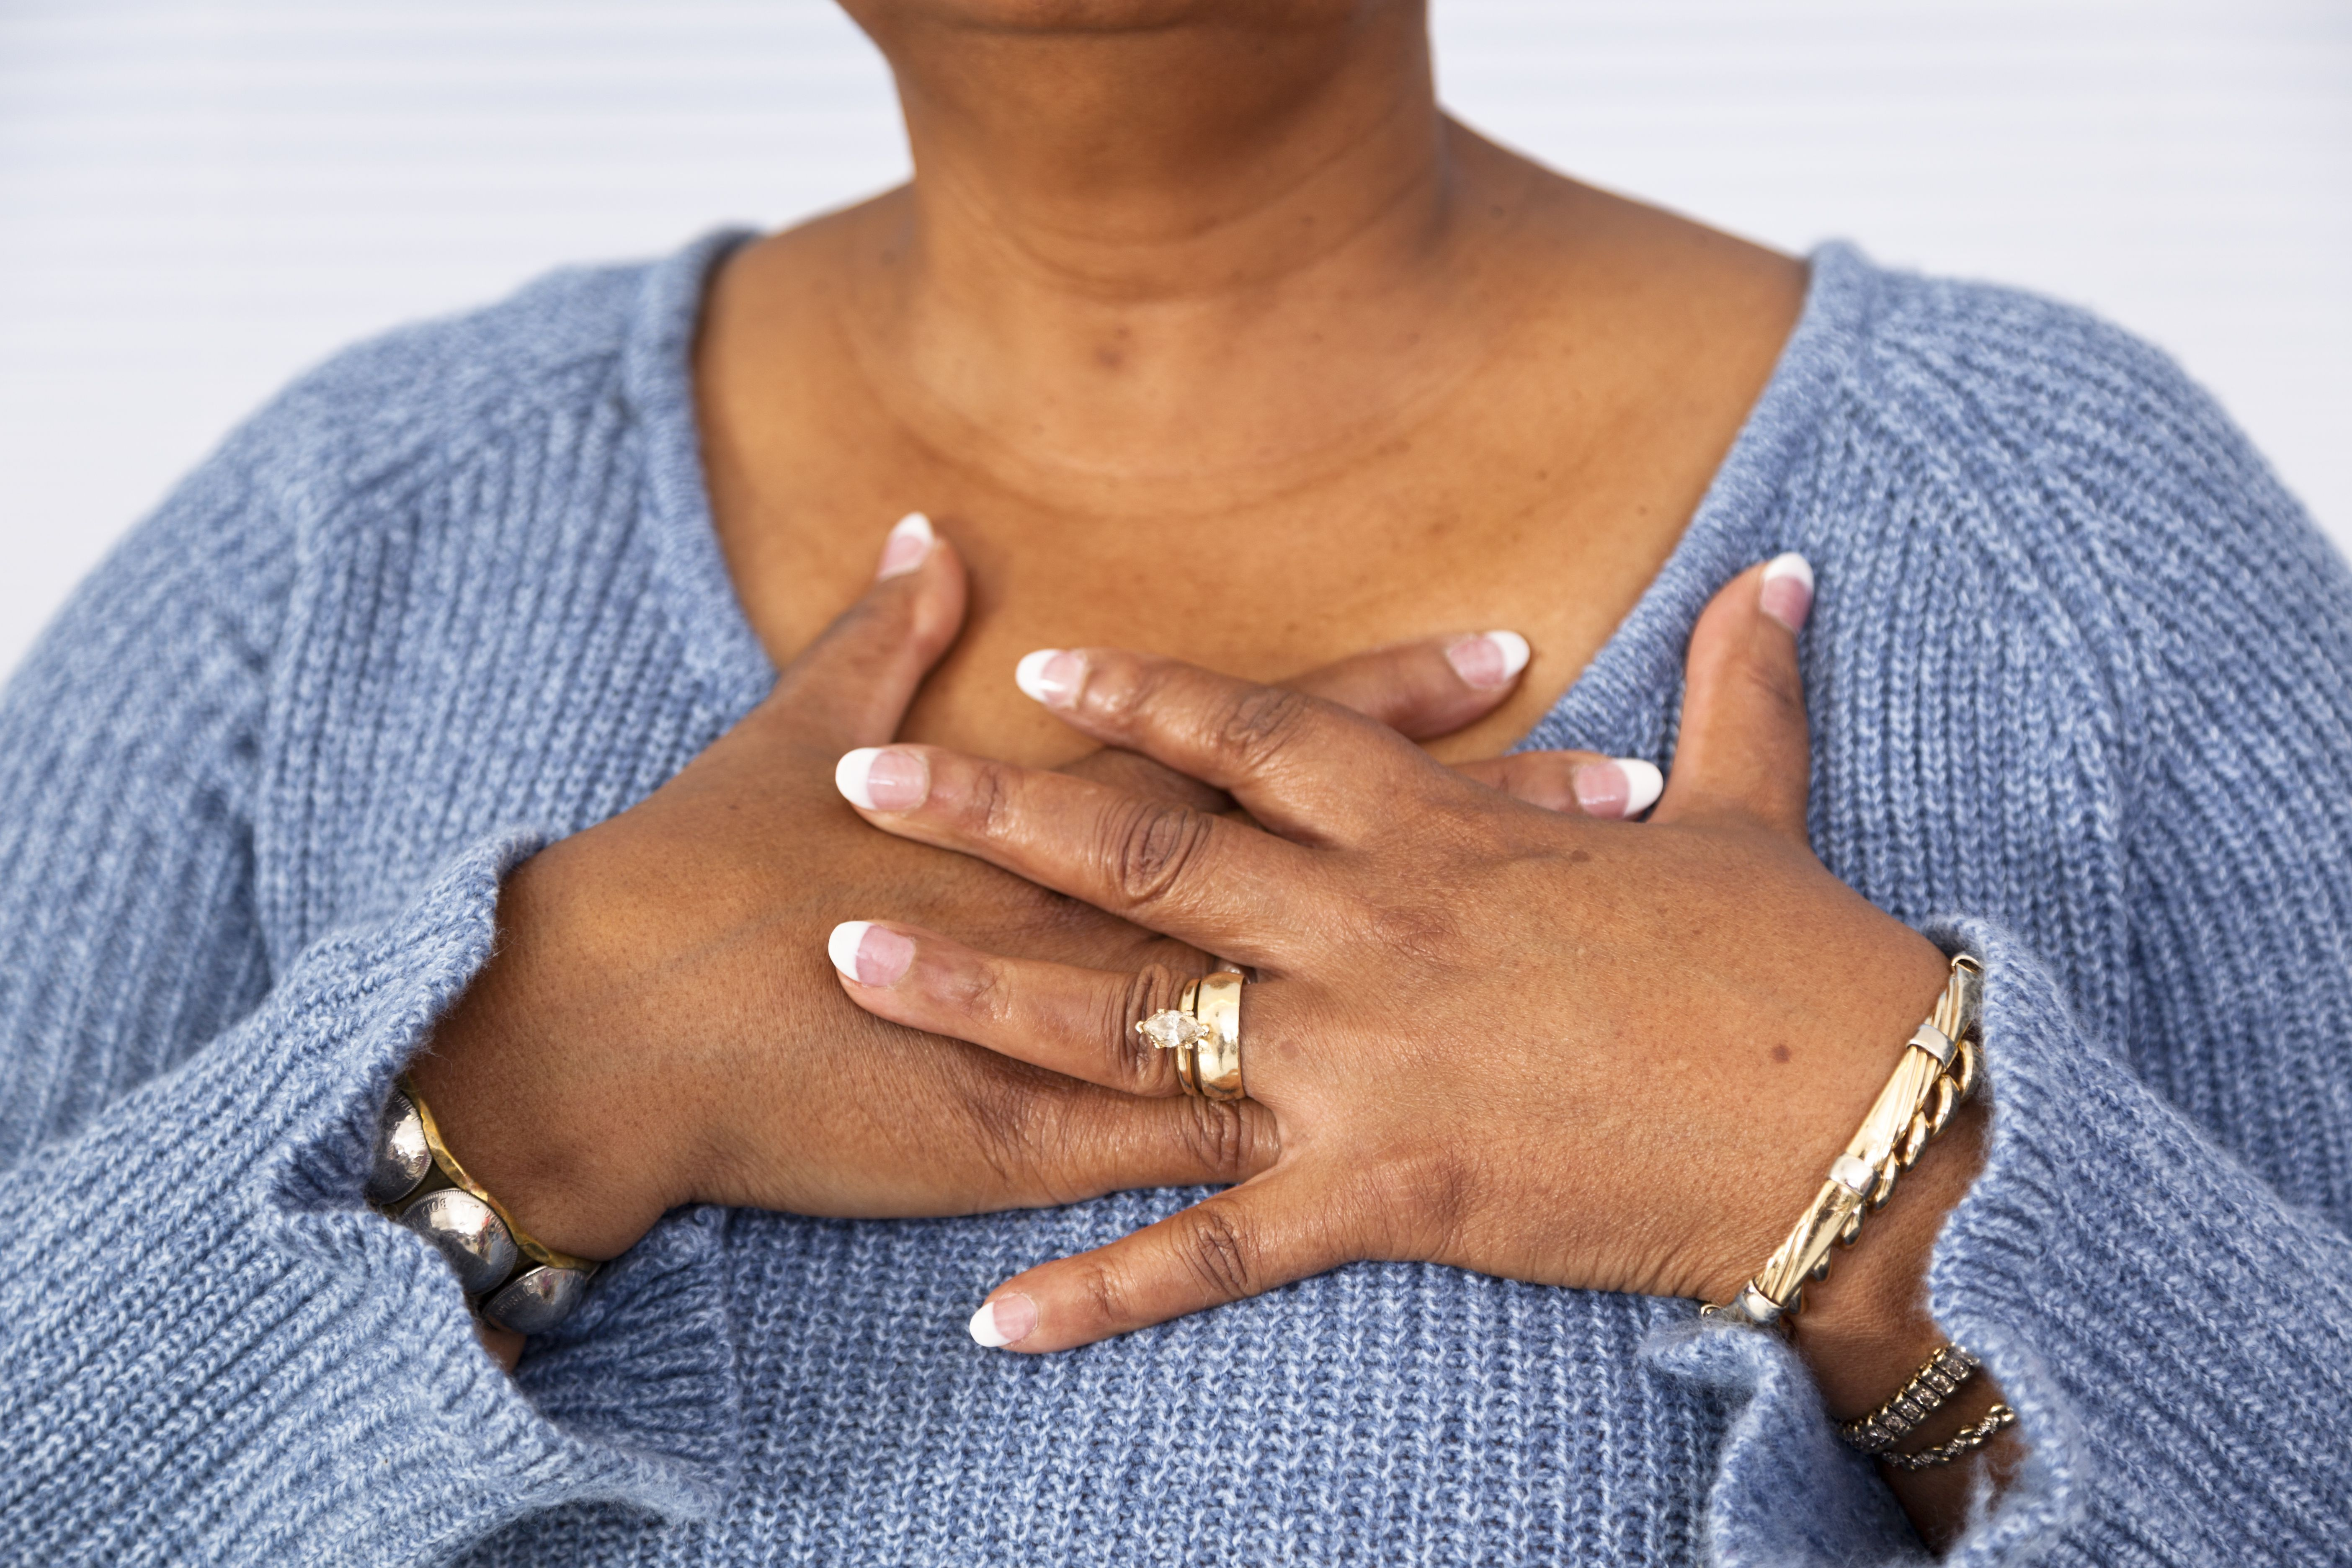 Pleurisy: Symptoms, Causes, Diagnosis, and Treatment